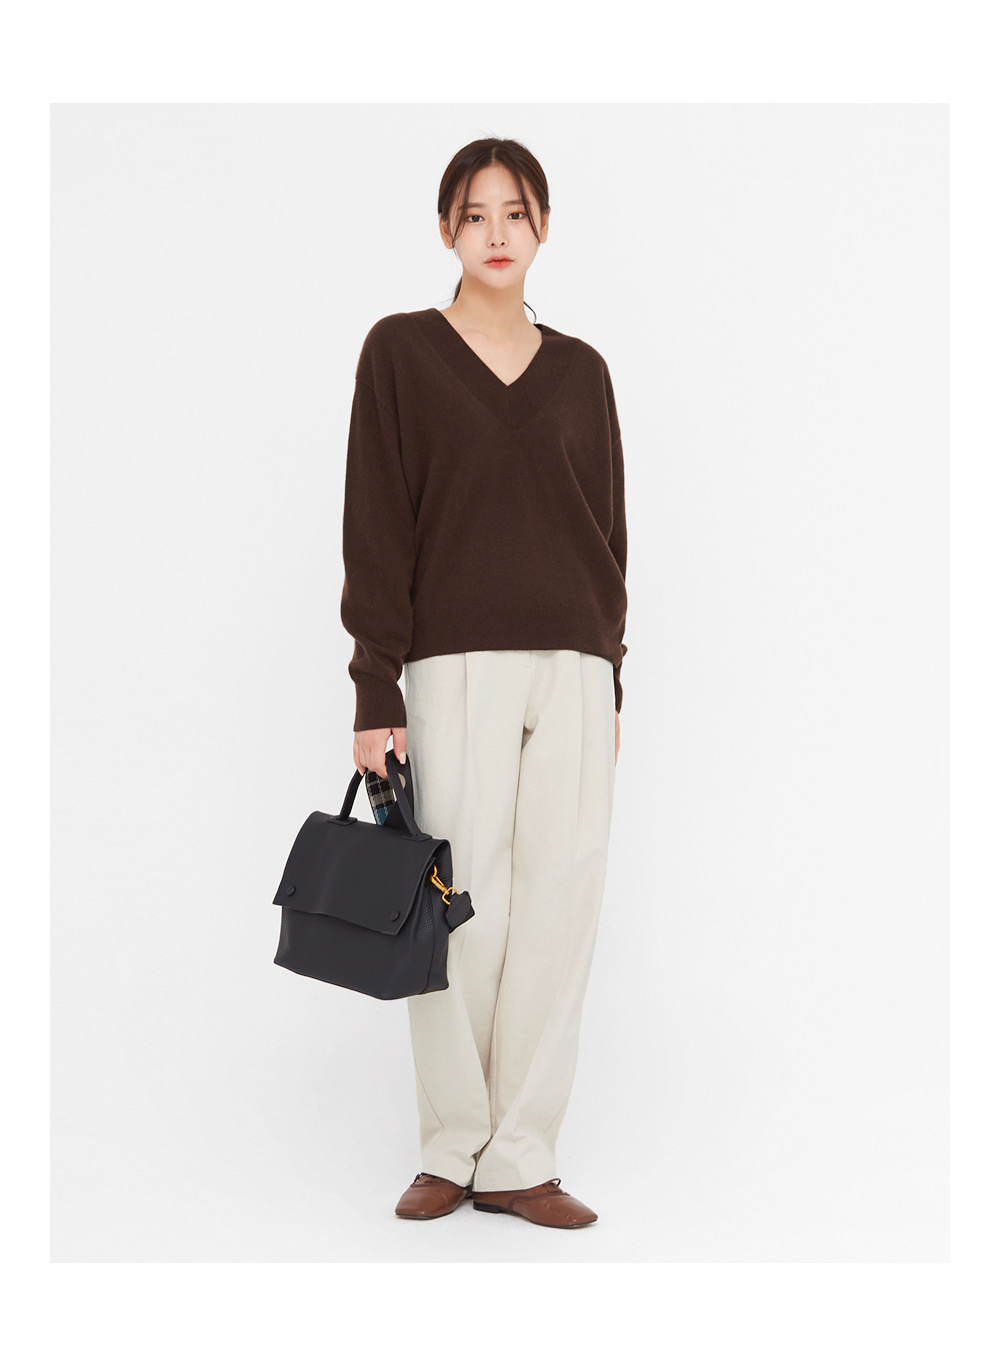 marie wool v-neck knit